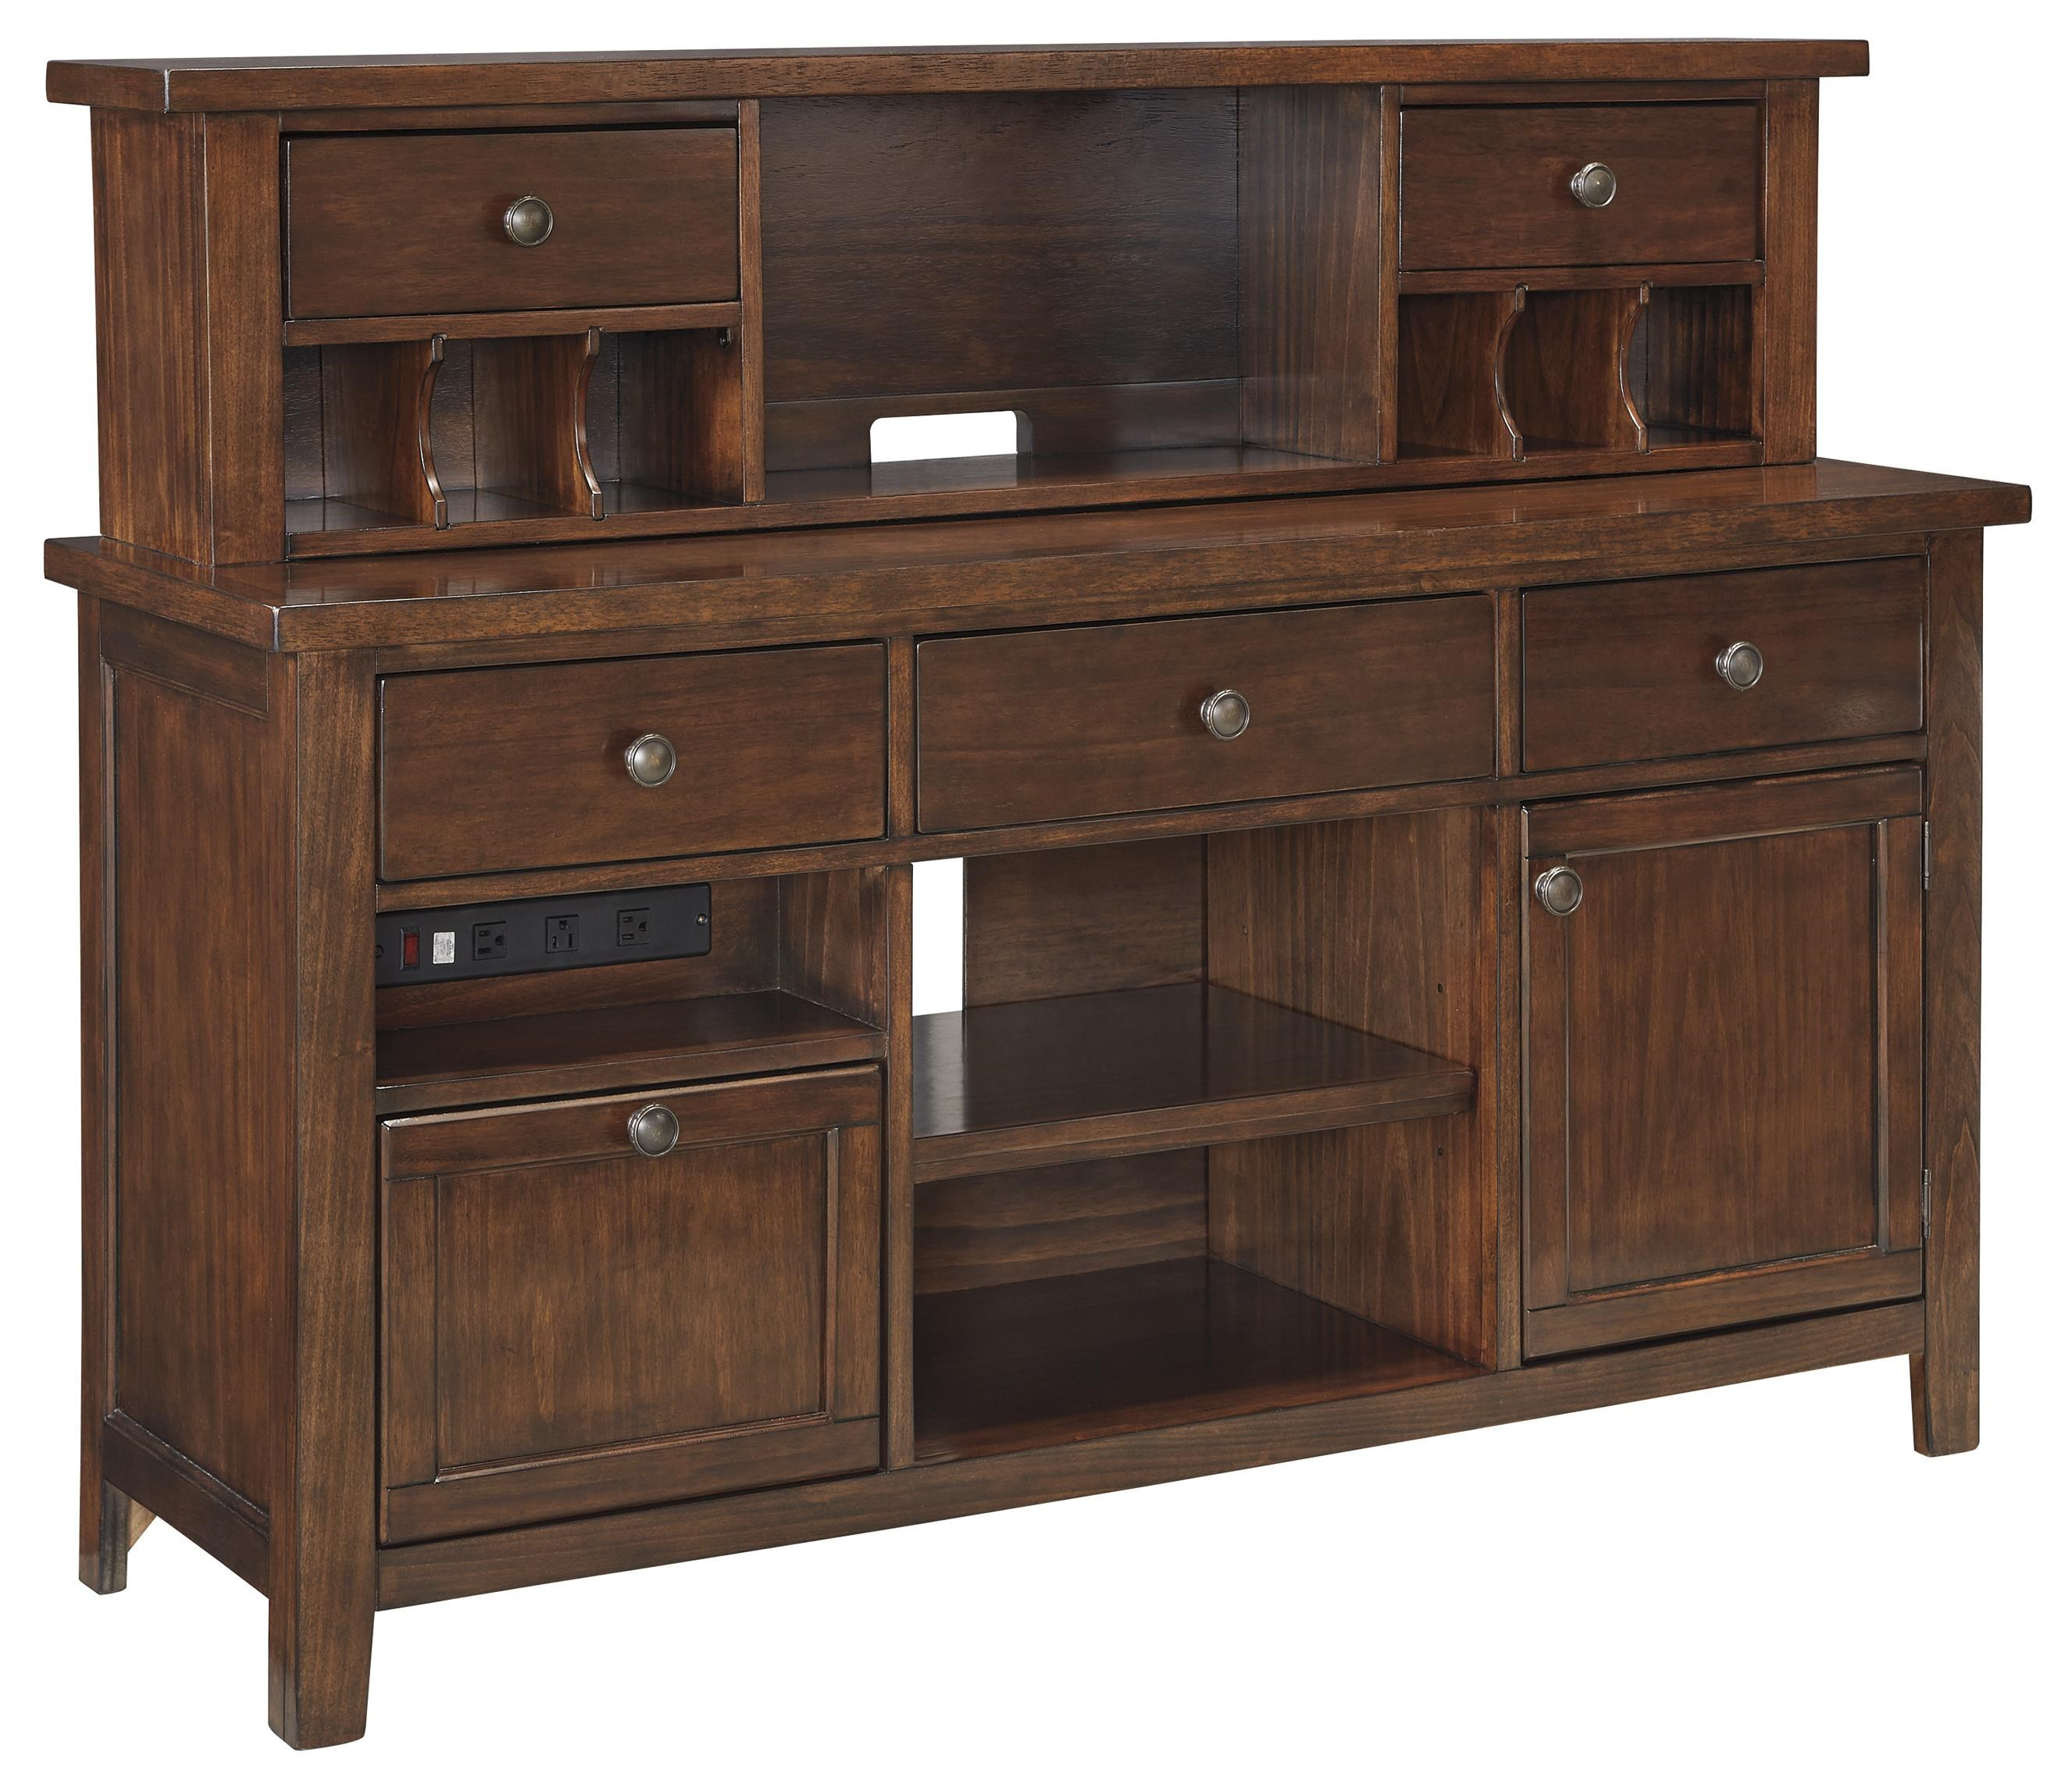 Credenza for Wine and design west ashley